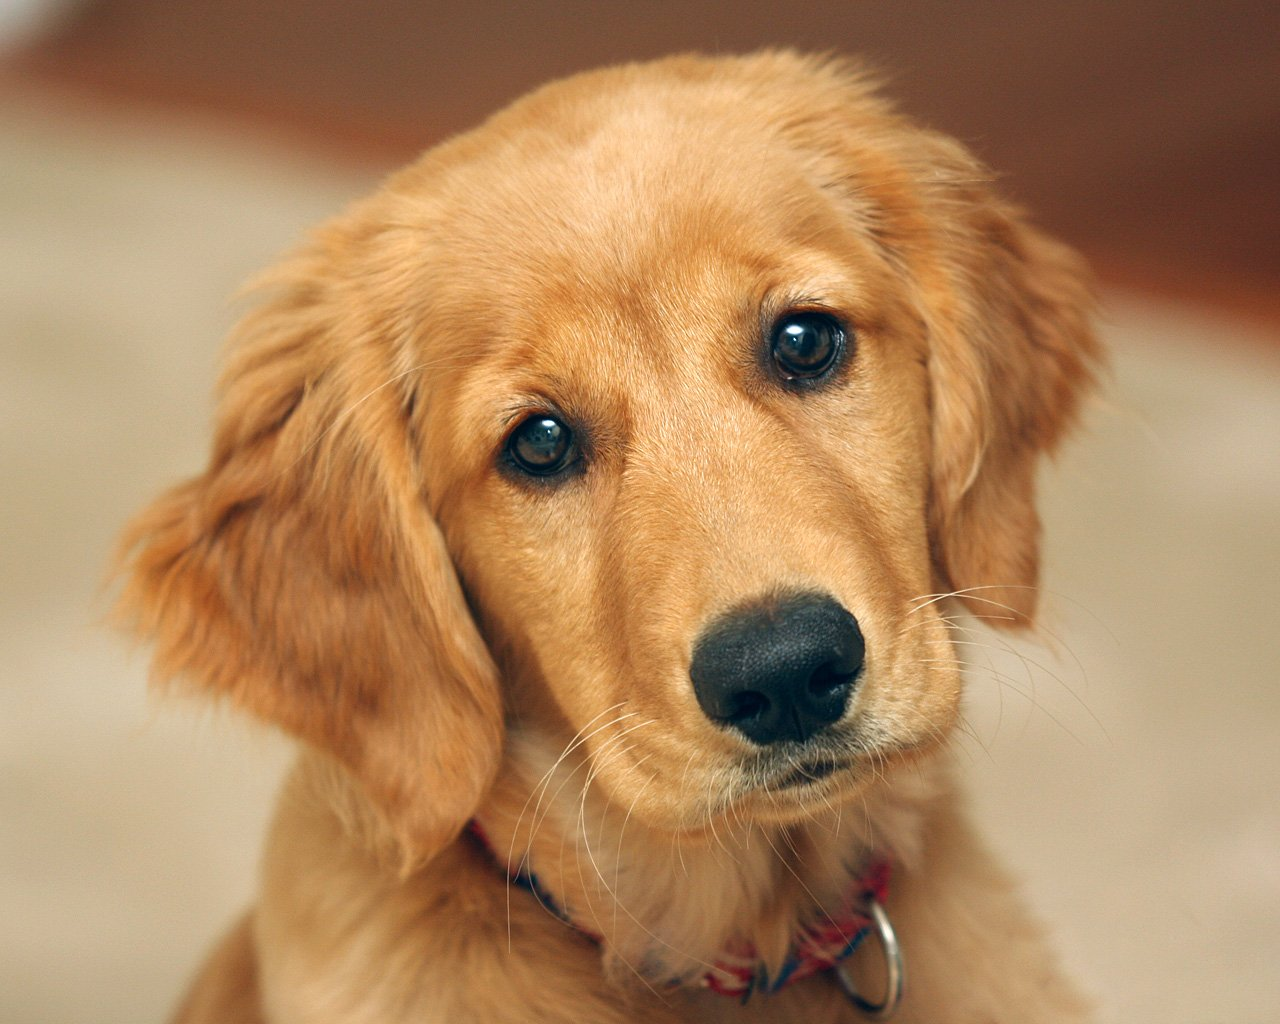 golden-retriever-0-1.jpg